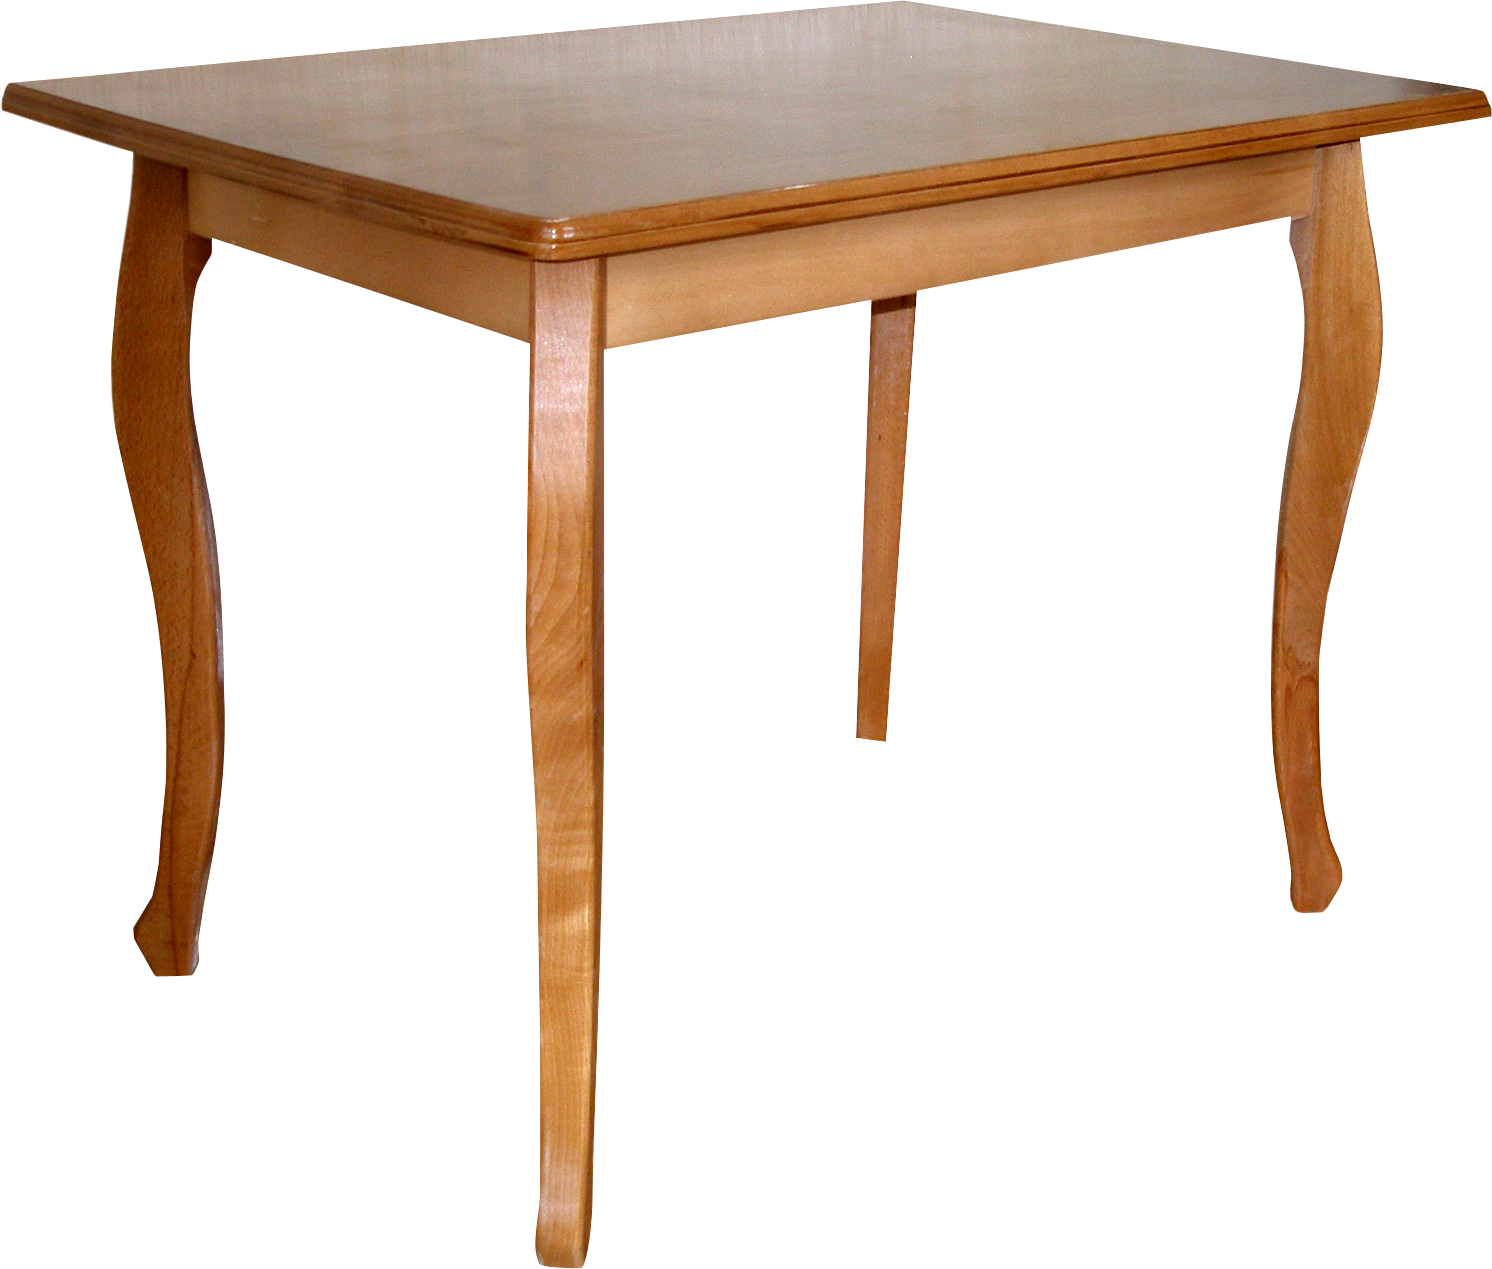 Coffee tables furniture clip. Clipart table living room table